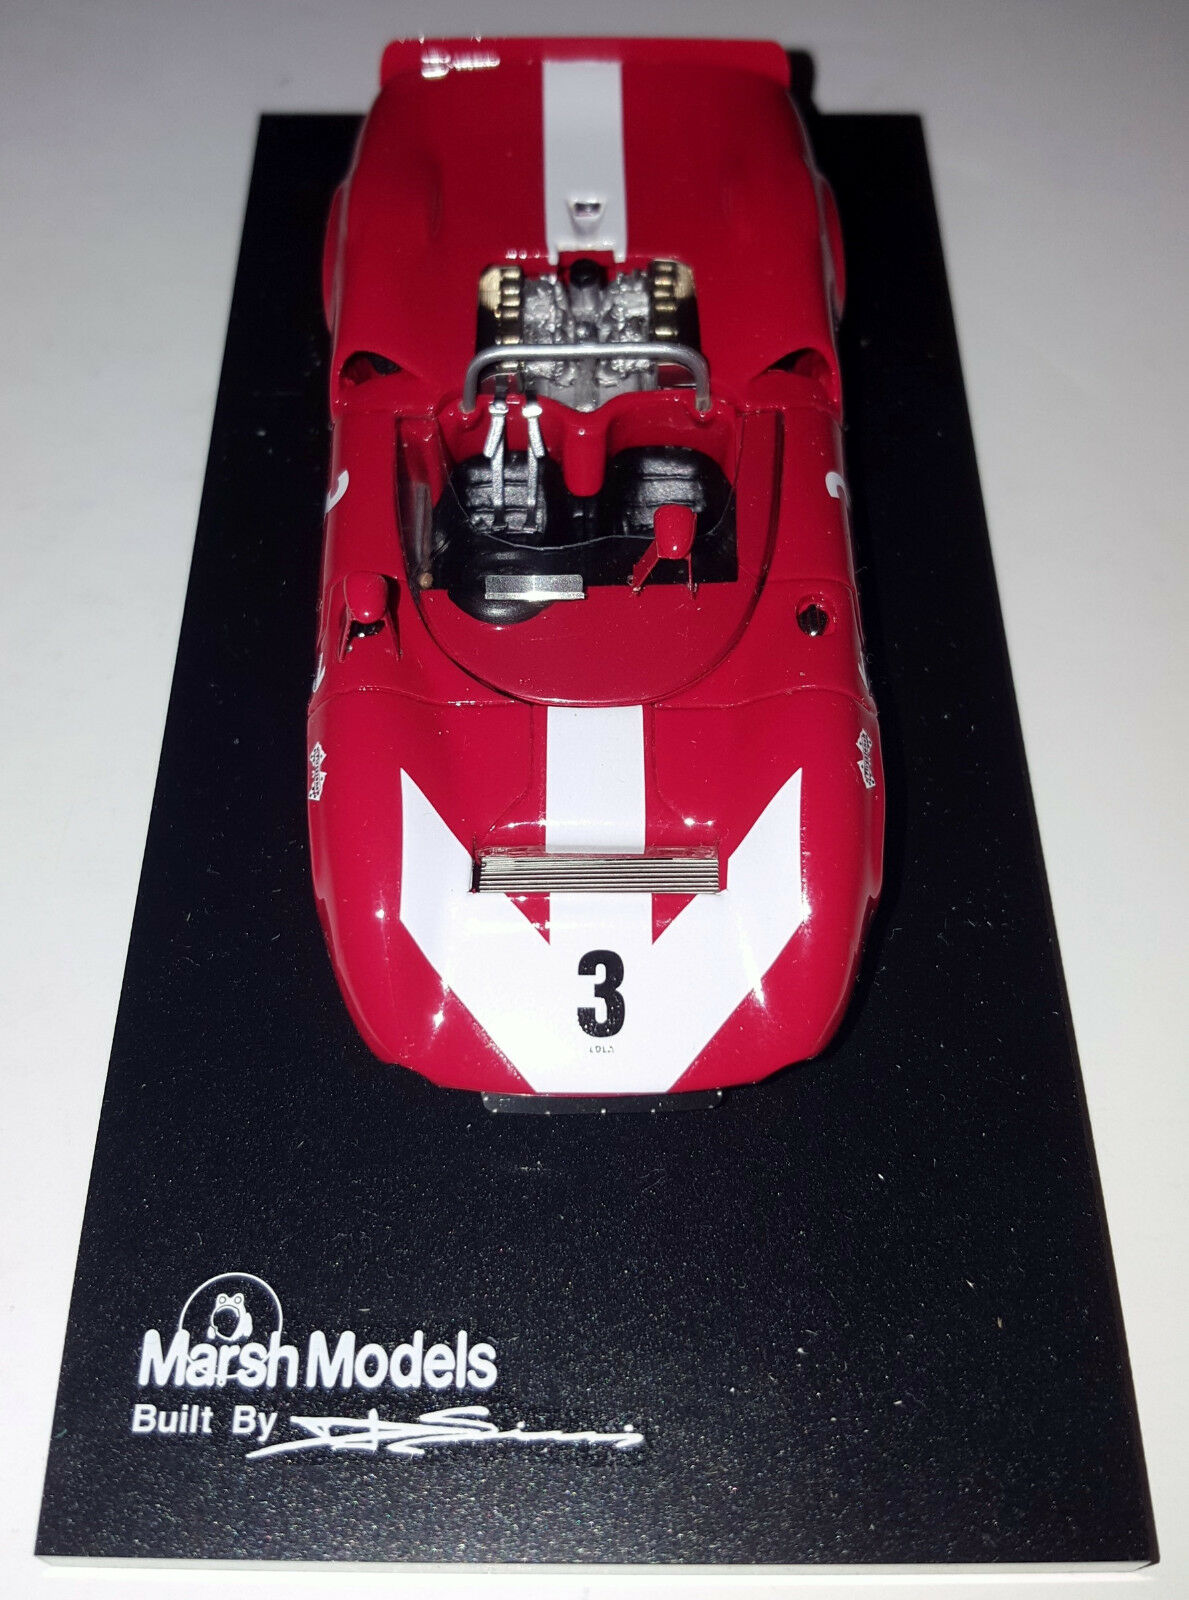 Marsh Models MM24 1 43 1966 Can Can Can Am Riverside Lola T70 Mk.II Spyder 3 Graham Hill a1719b